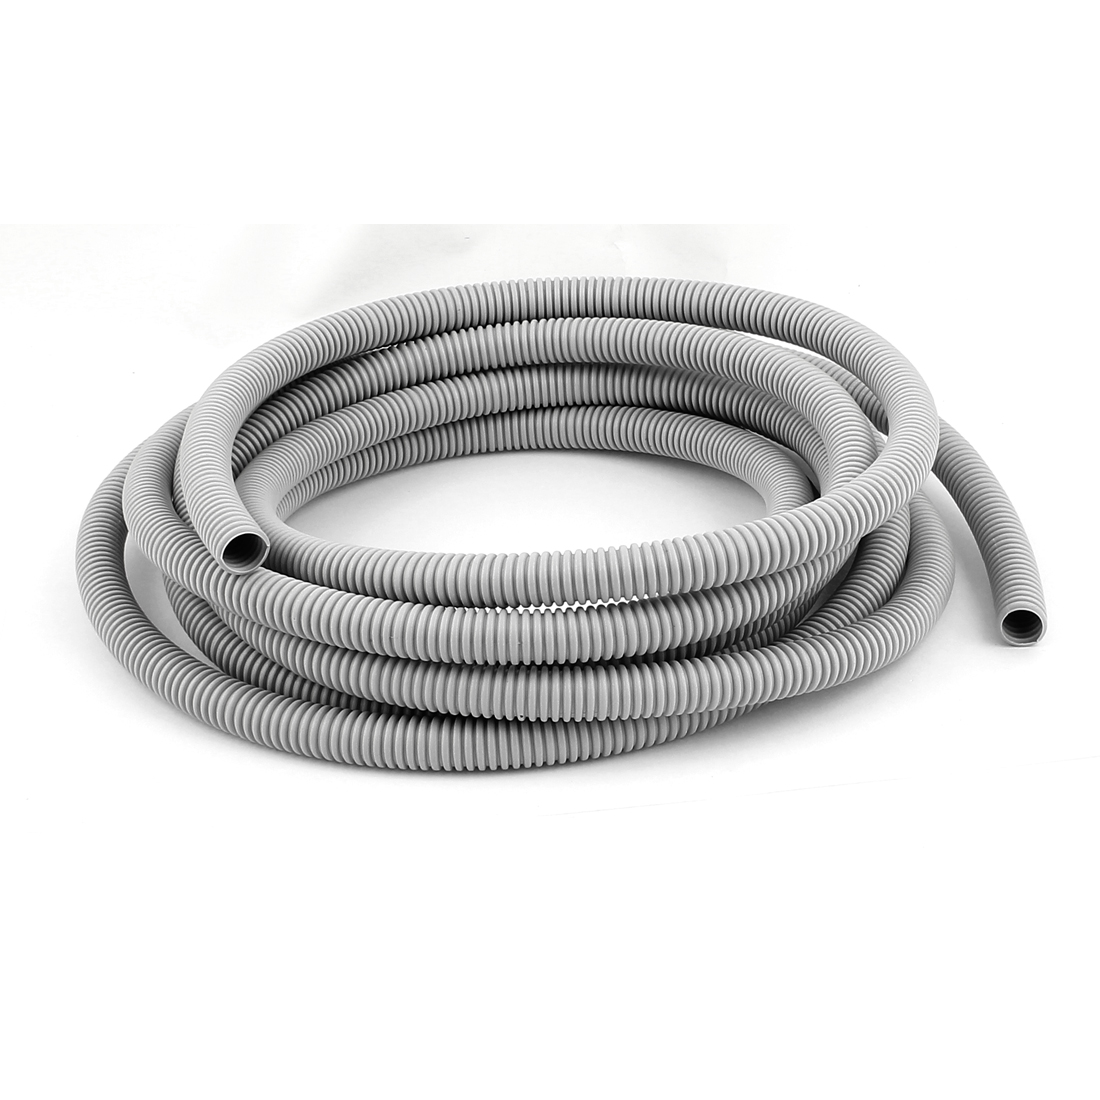 5.5m Plastic Corrugated Tube Electric Conduit Pipe Gray 12x16MM Diameter